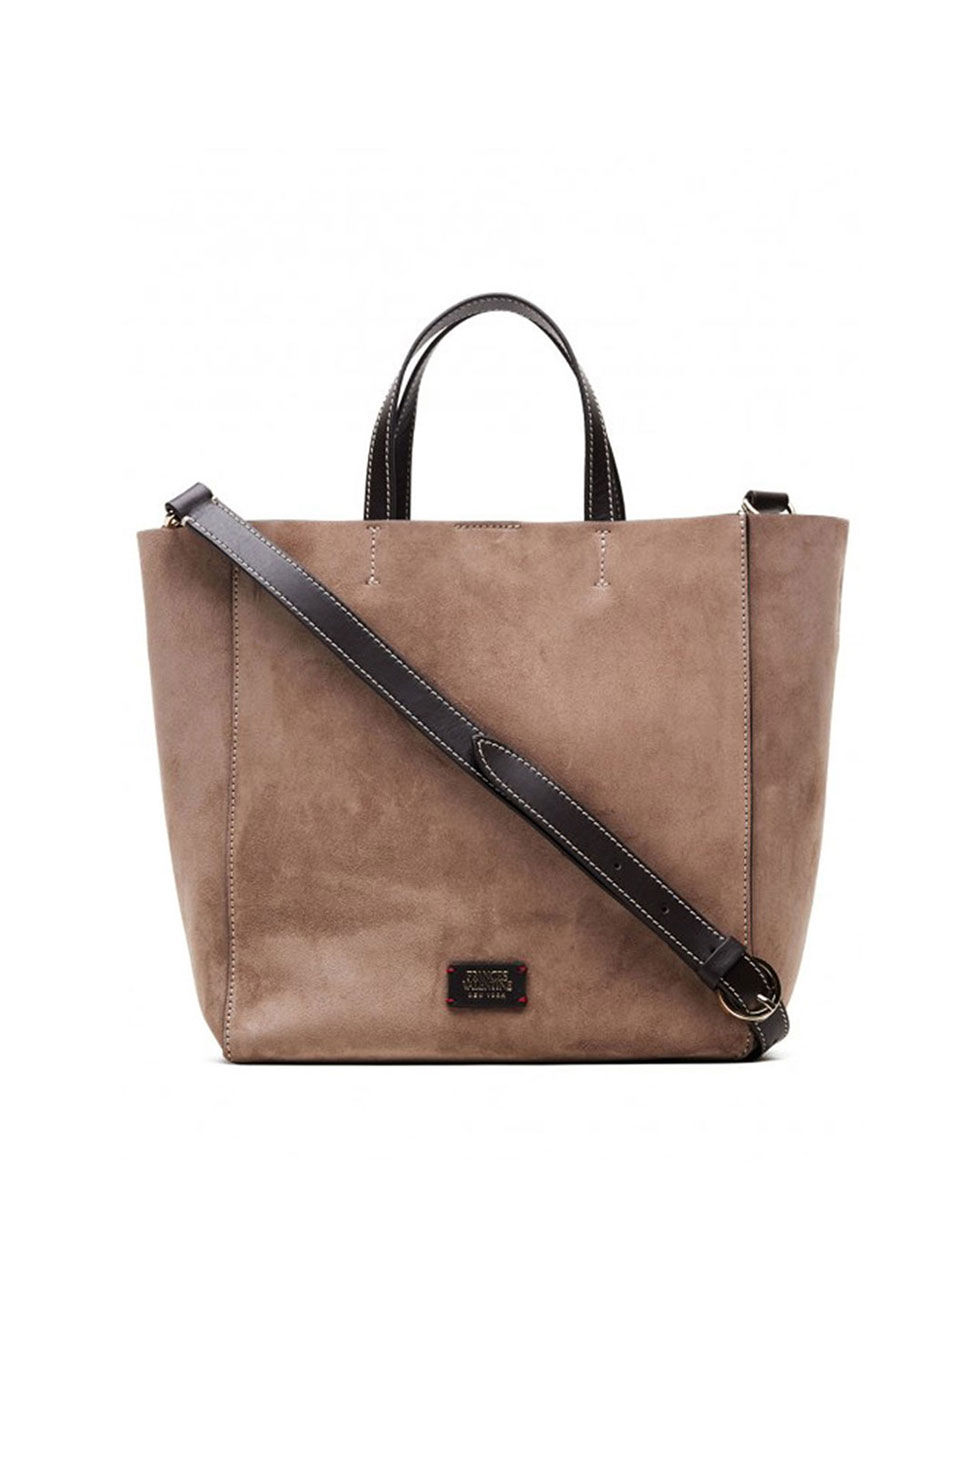 14 Cool Work Bags For Professional Women that Aren't Boring